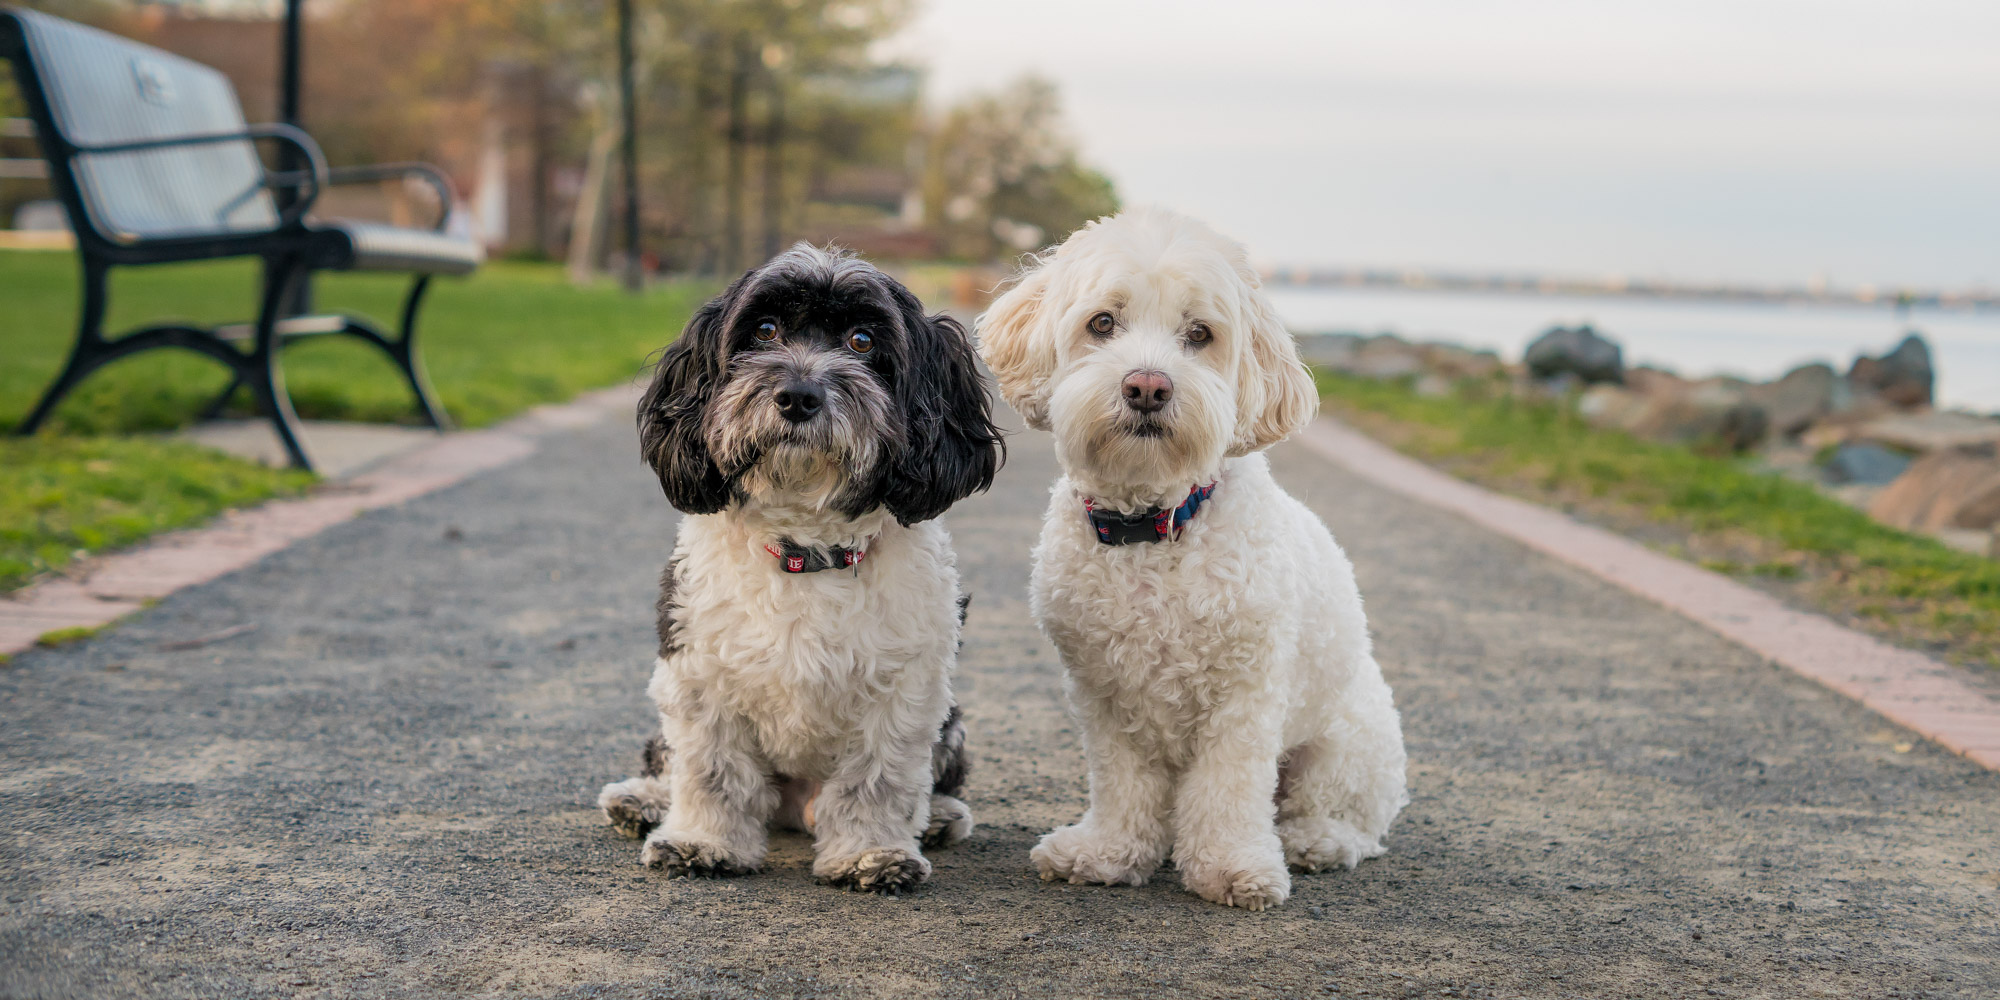 Two dogs together in Alexandria Virginia at the park.